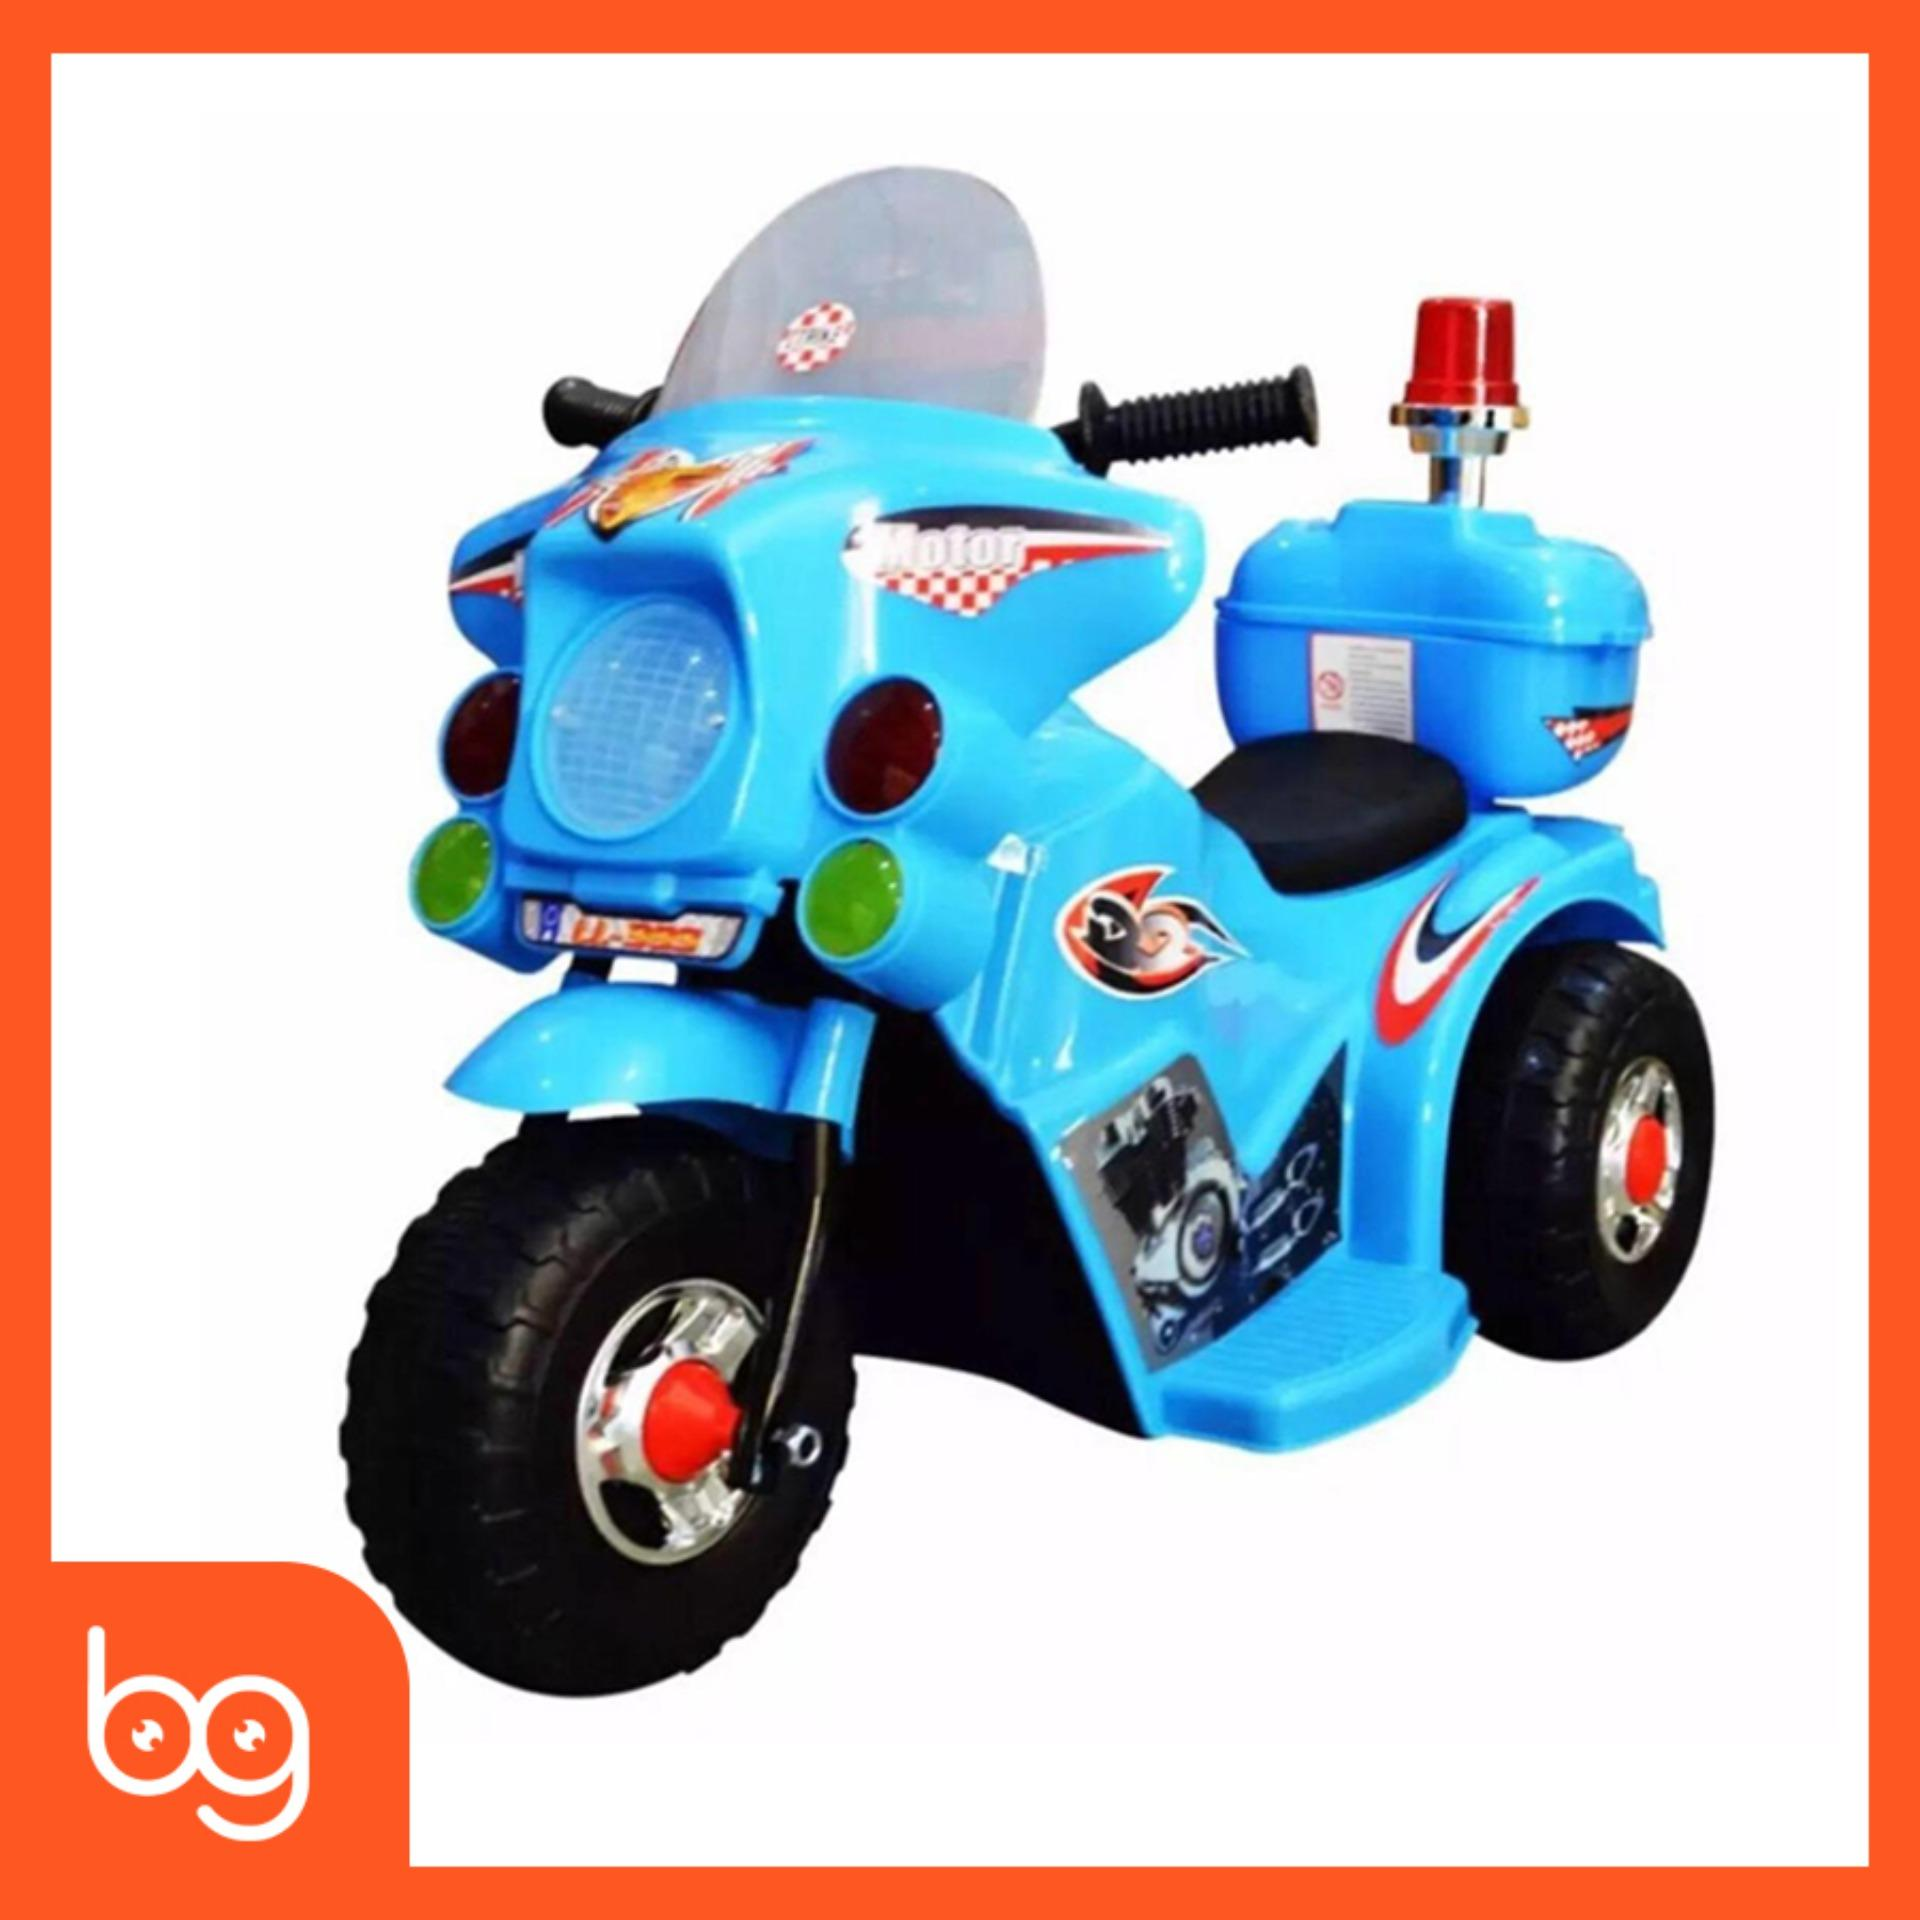 Rechargeable Motorcycle Bike for Kids Ride-on Toys Police Motorcycle